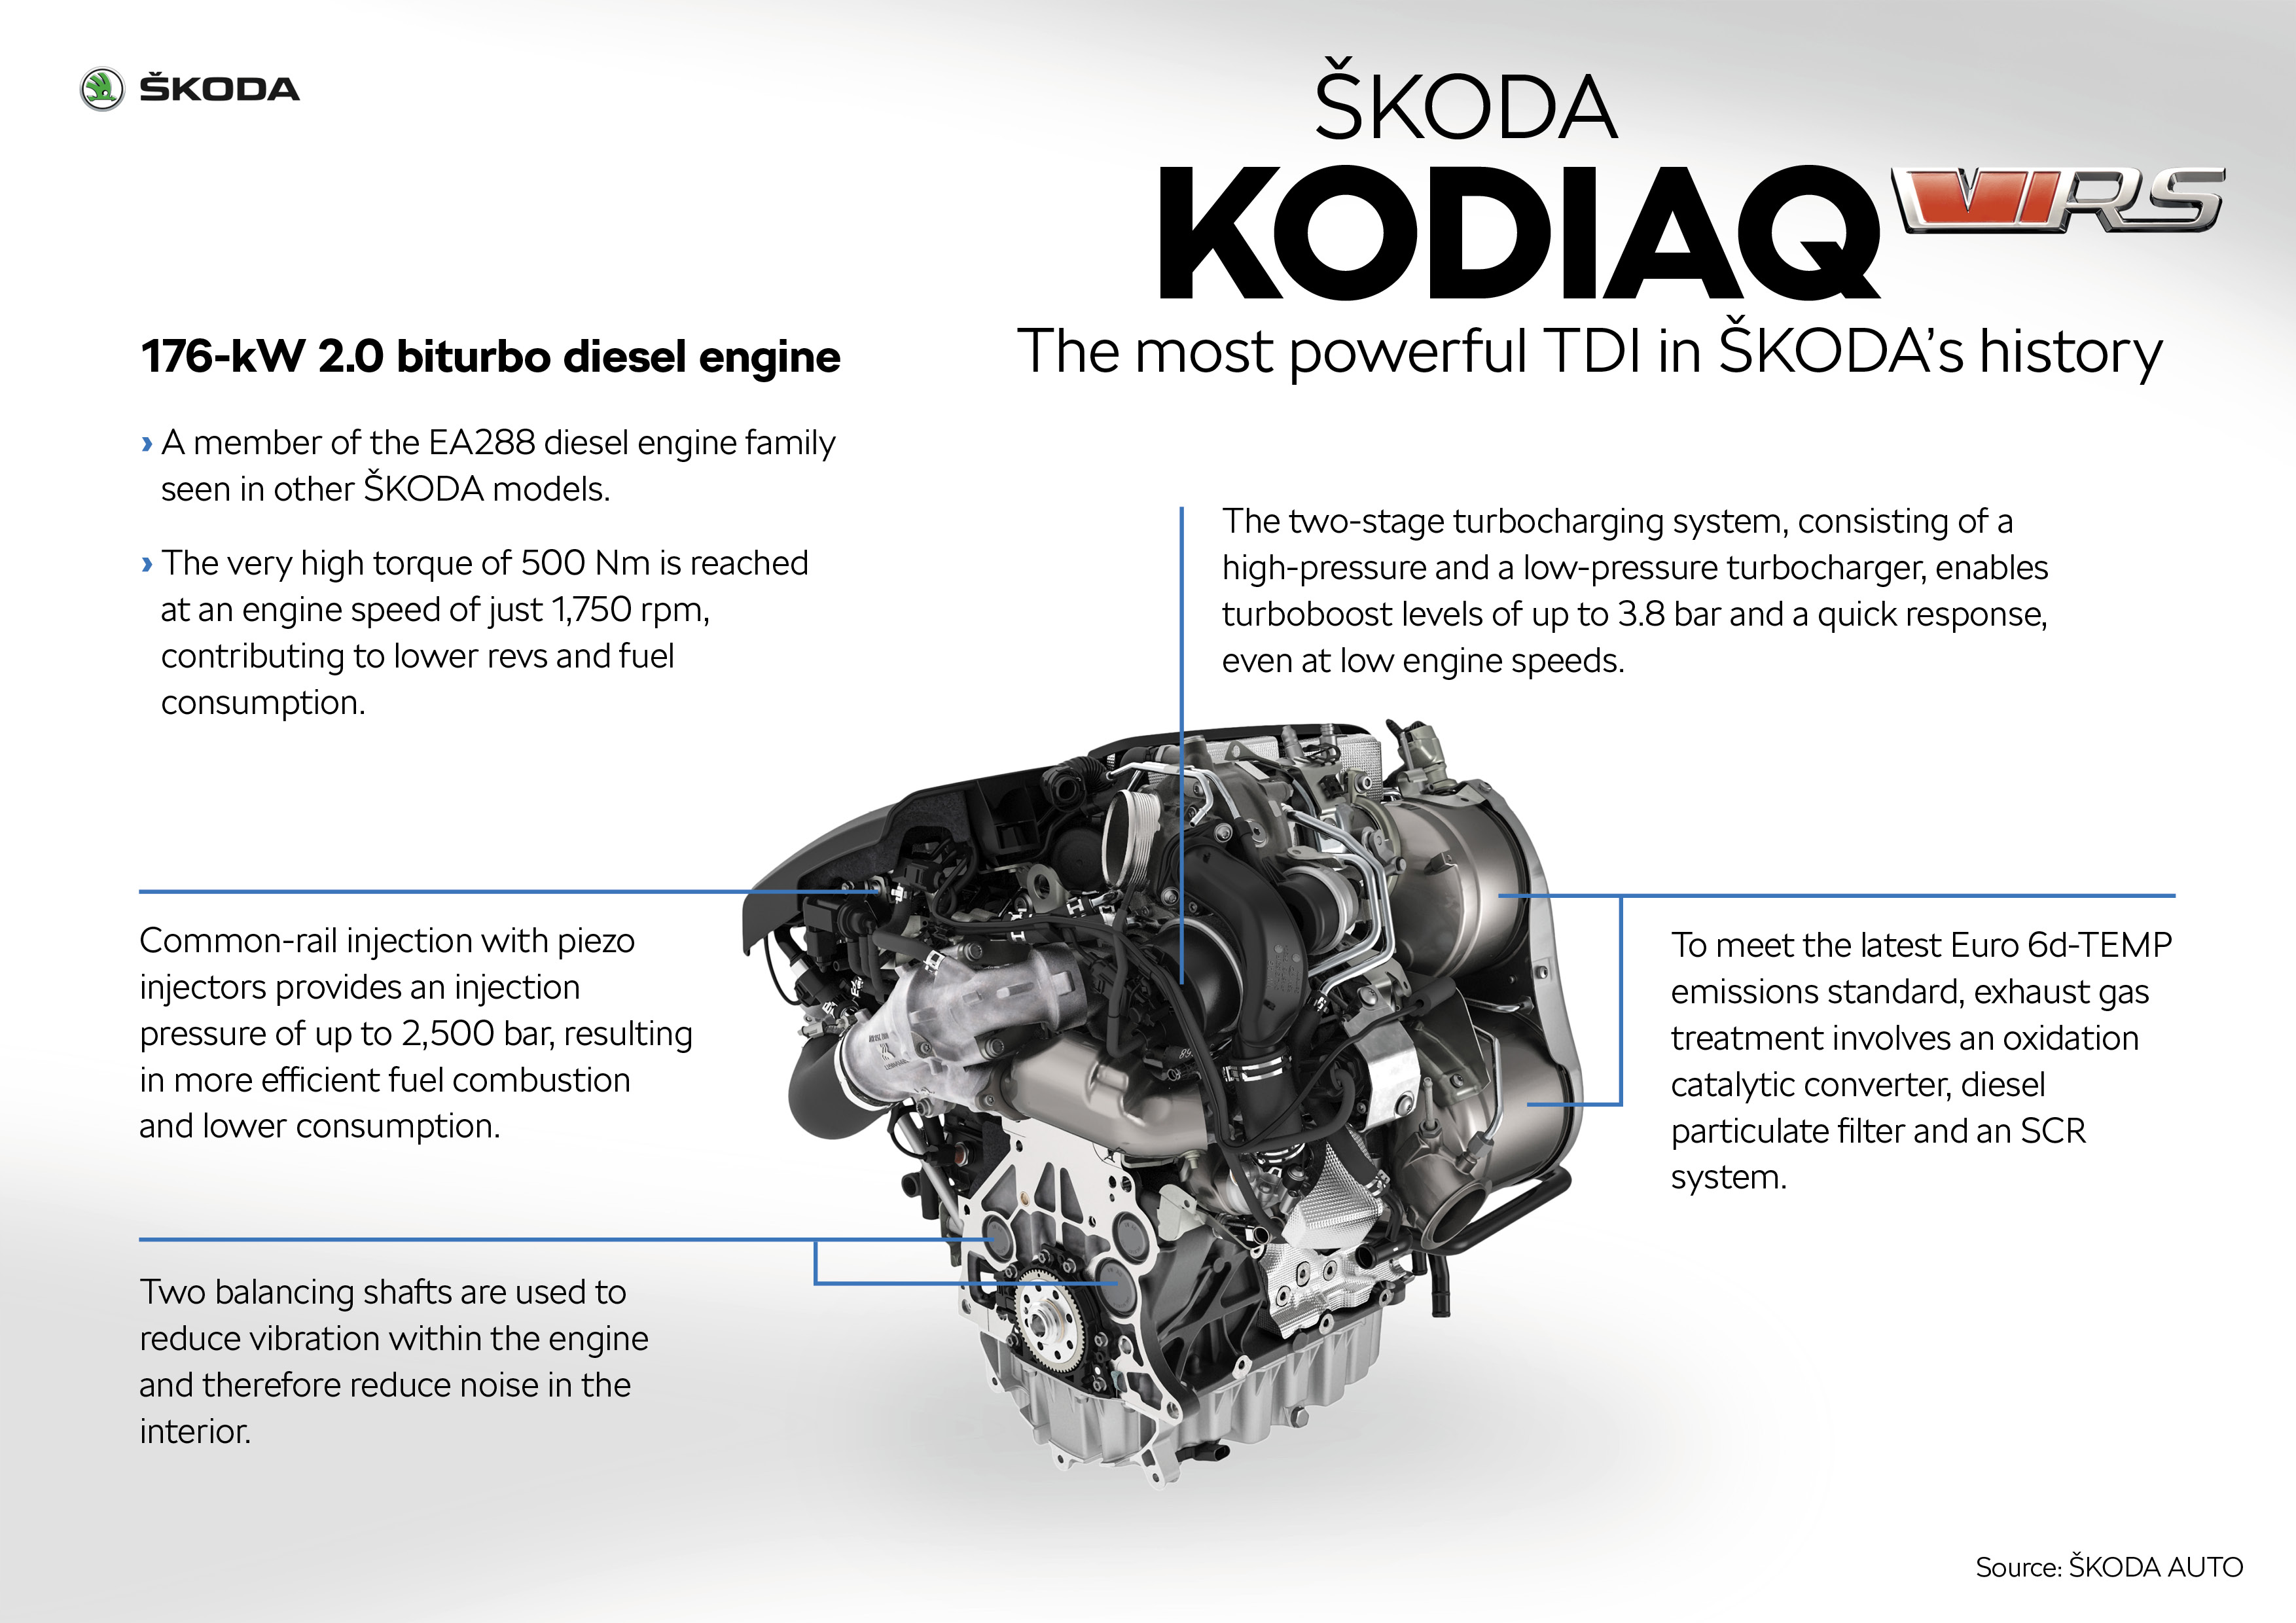 Engine: KODIAQ RS features the most powerful diesel engine